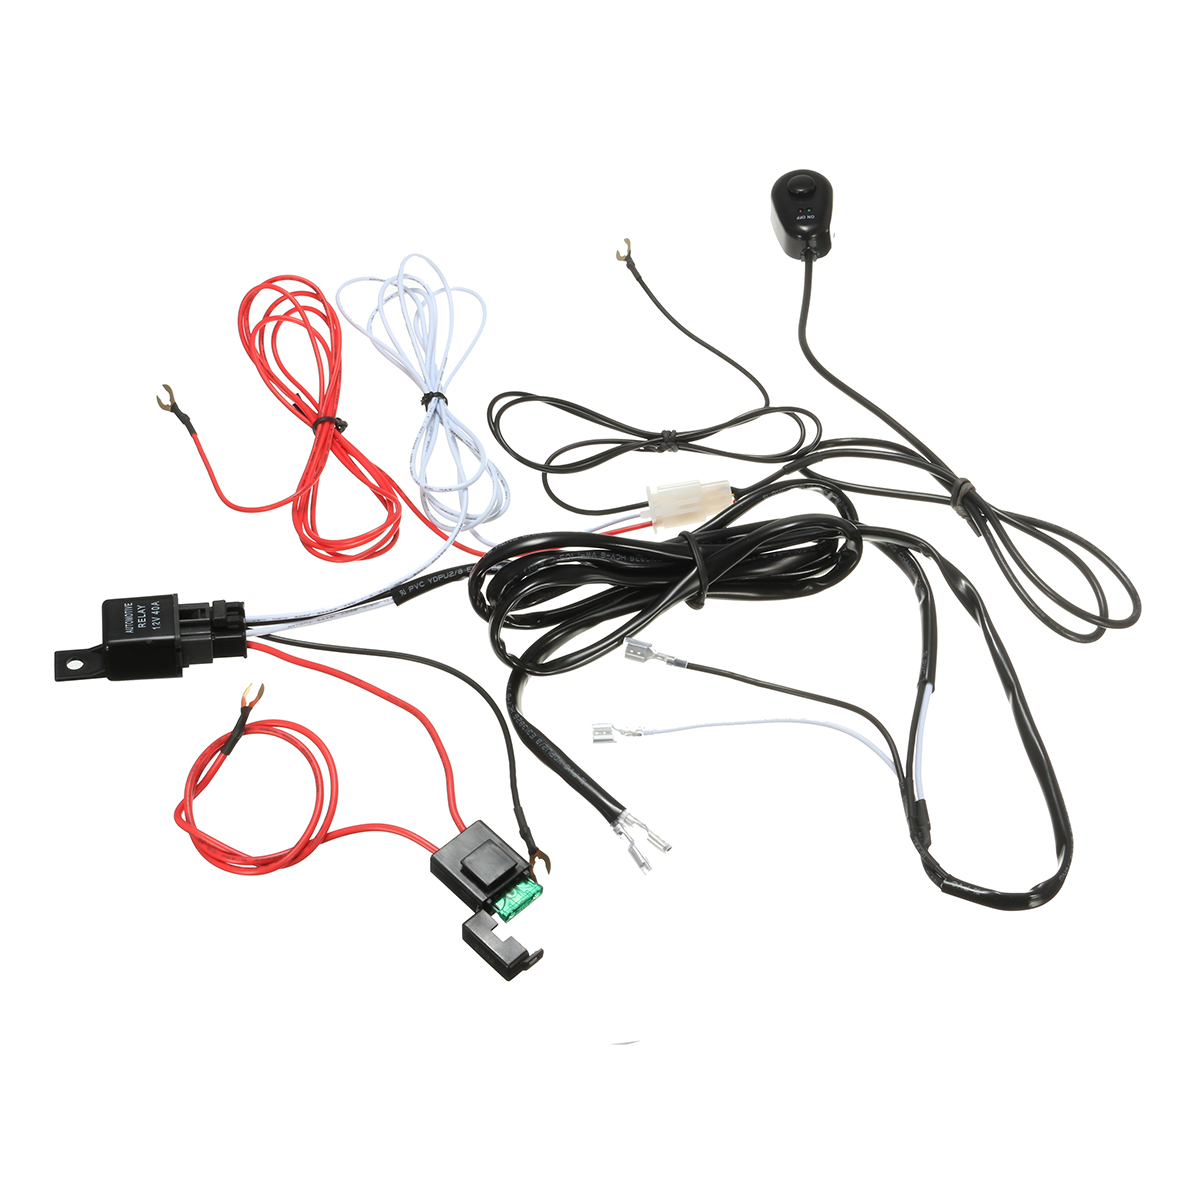 Wiring Harness Kit With Relay On Off Control Switch 12v 40a 2m For Led Drl Daytime Running Light